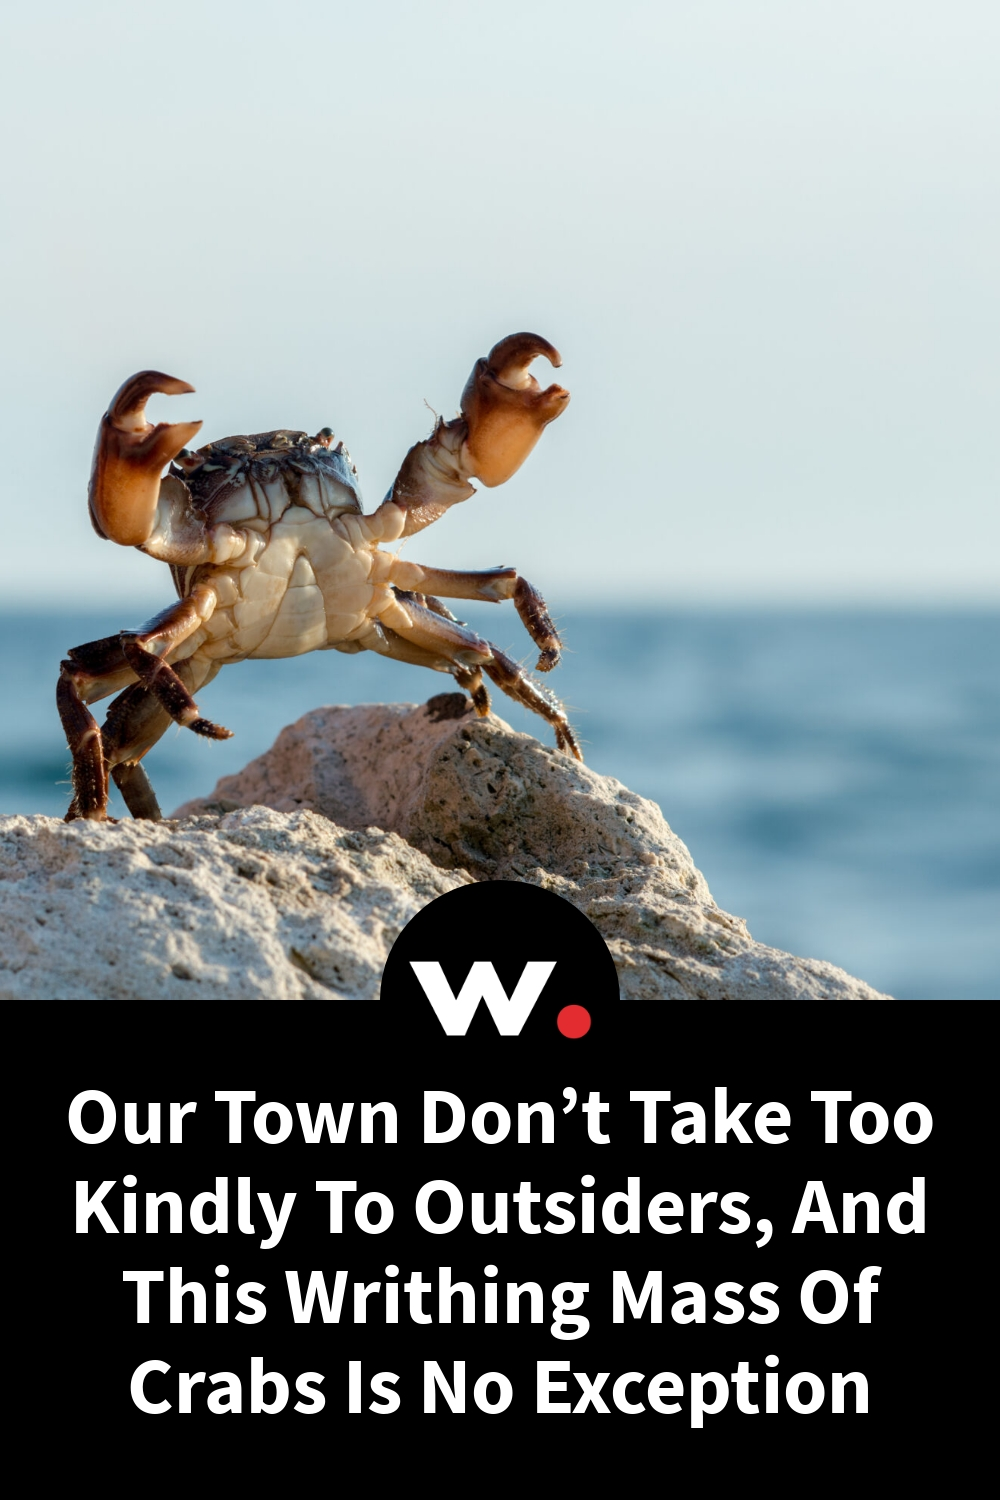 Our Town Don't Take Too Kindly To Outsiders, And This Writhing Mass Of Crabs Is No Exception